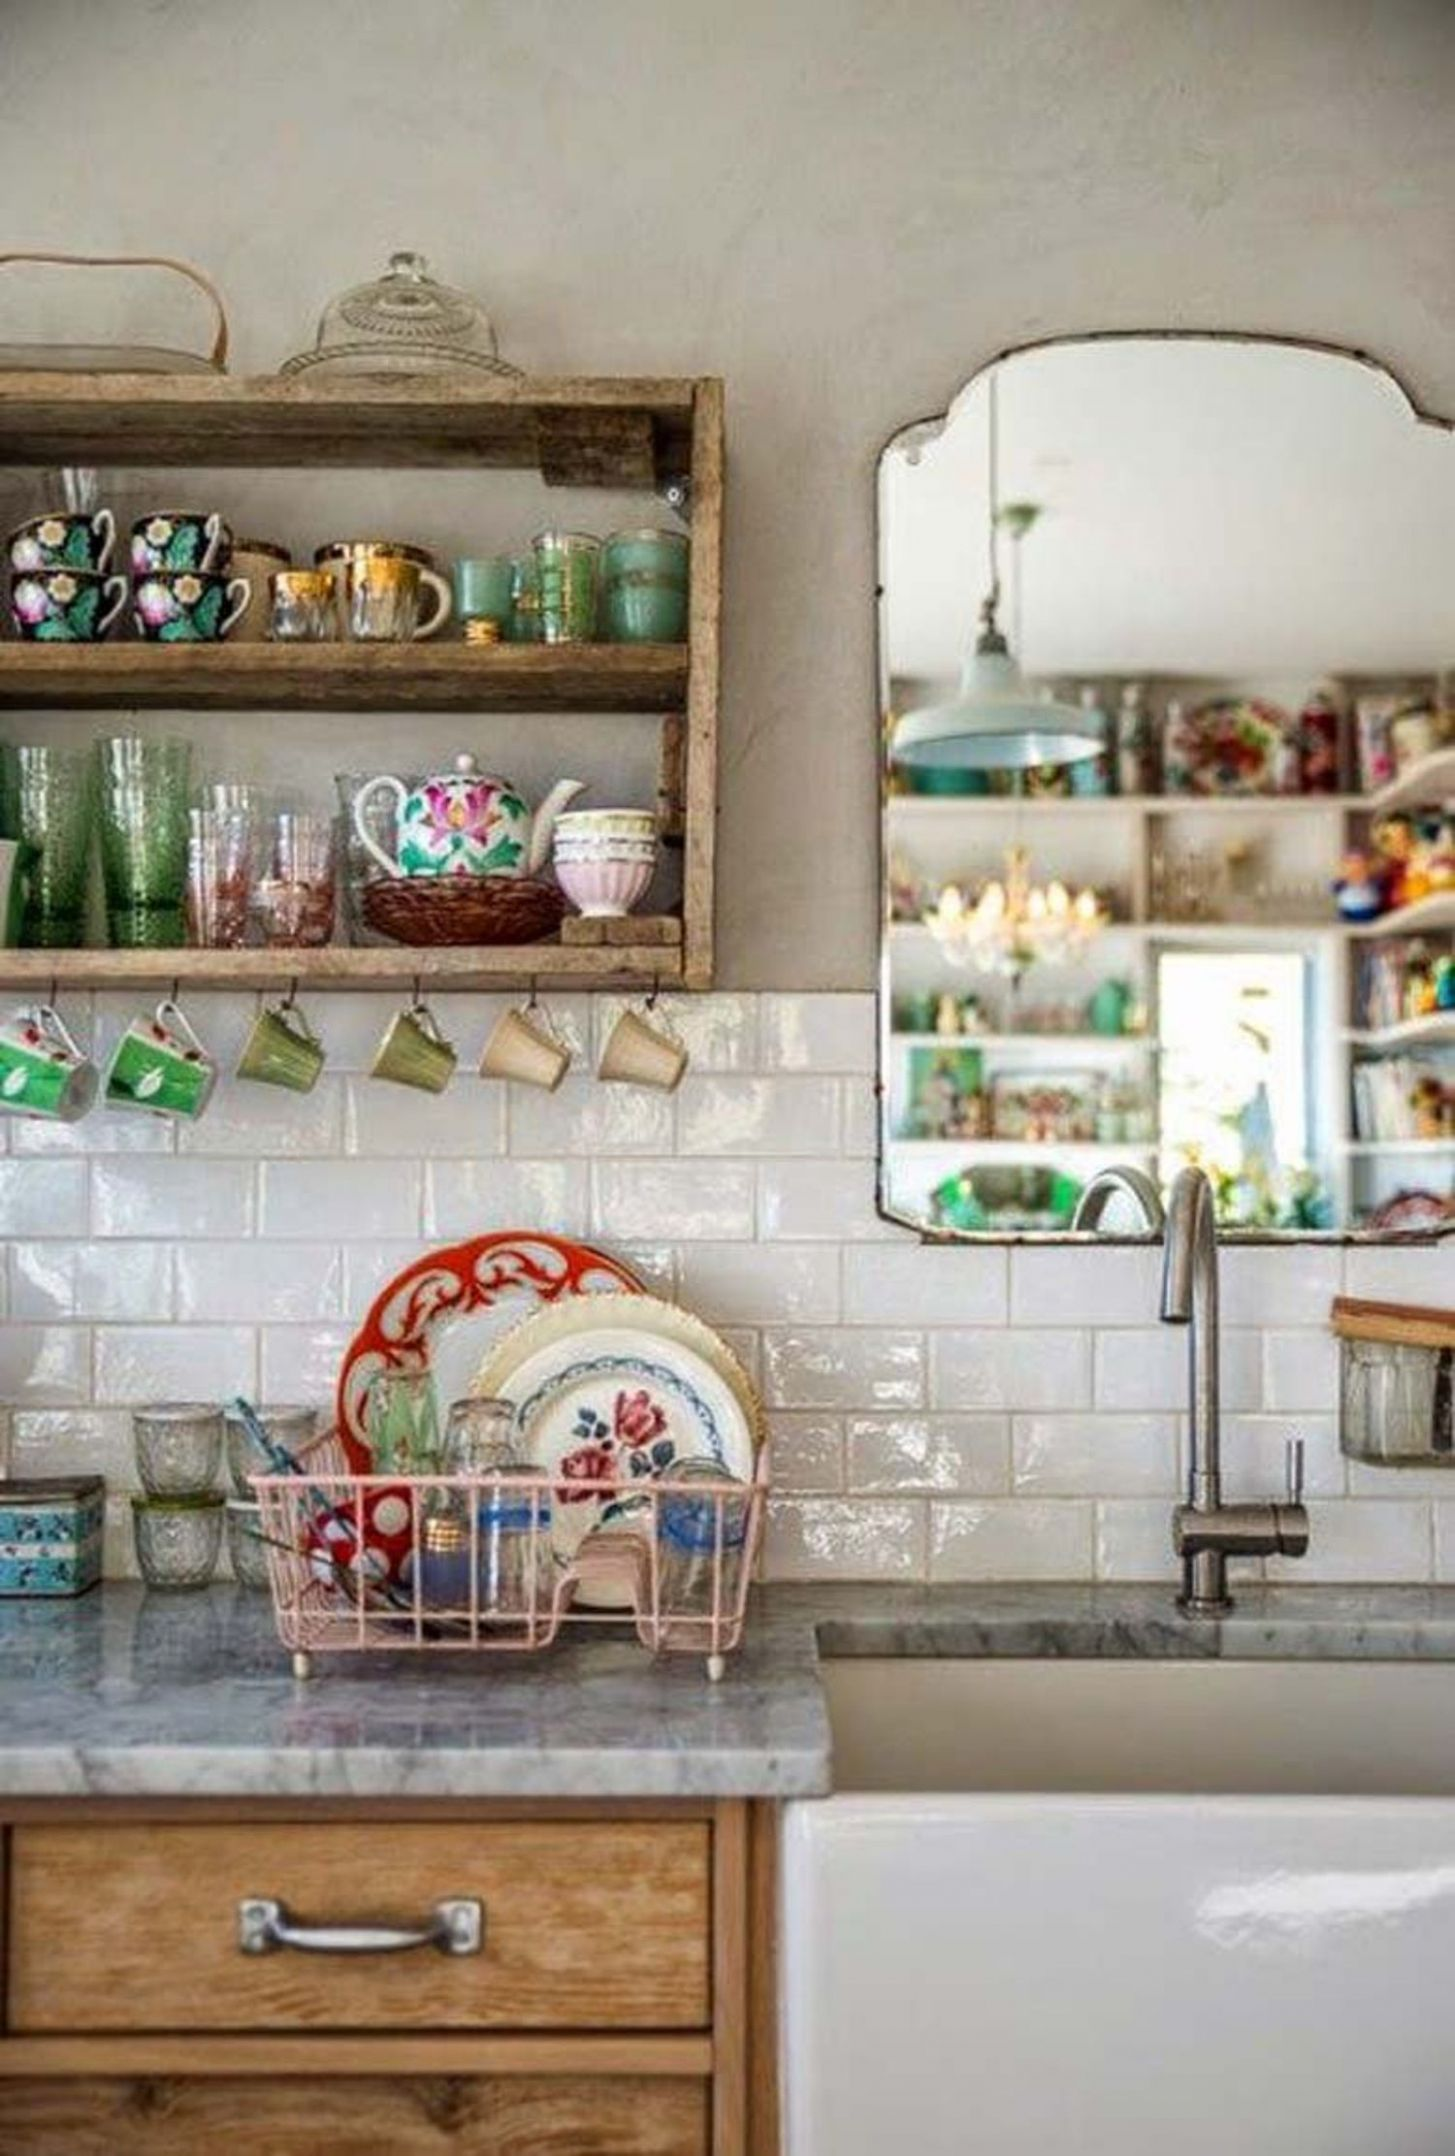 No Window Over the Kitchen Sink? Hang a Mirror!   Home kitchens ...